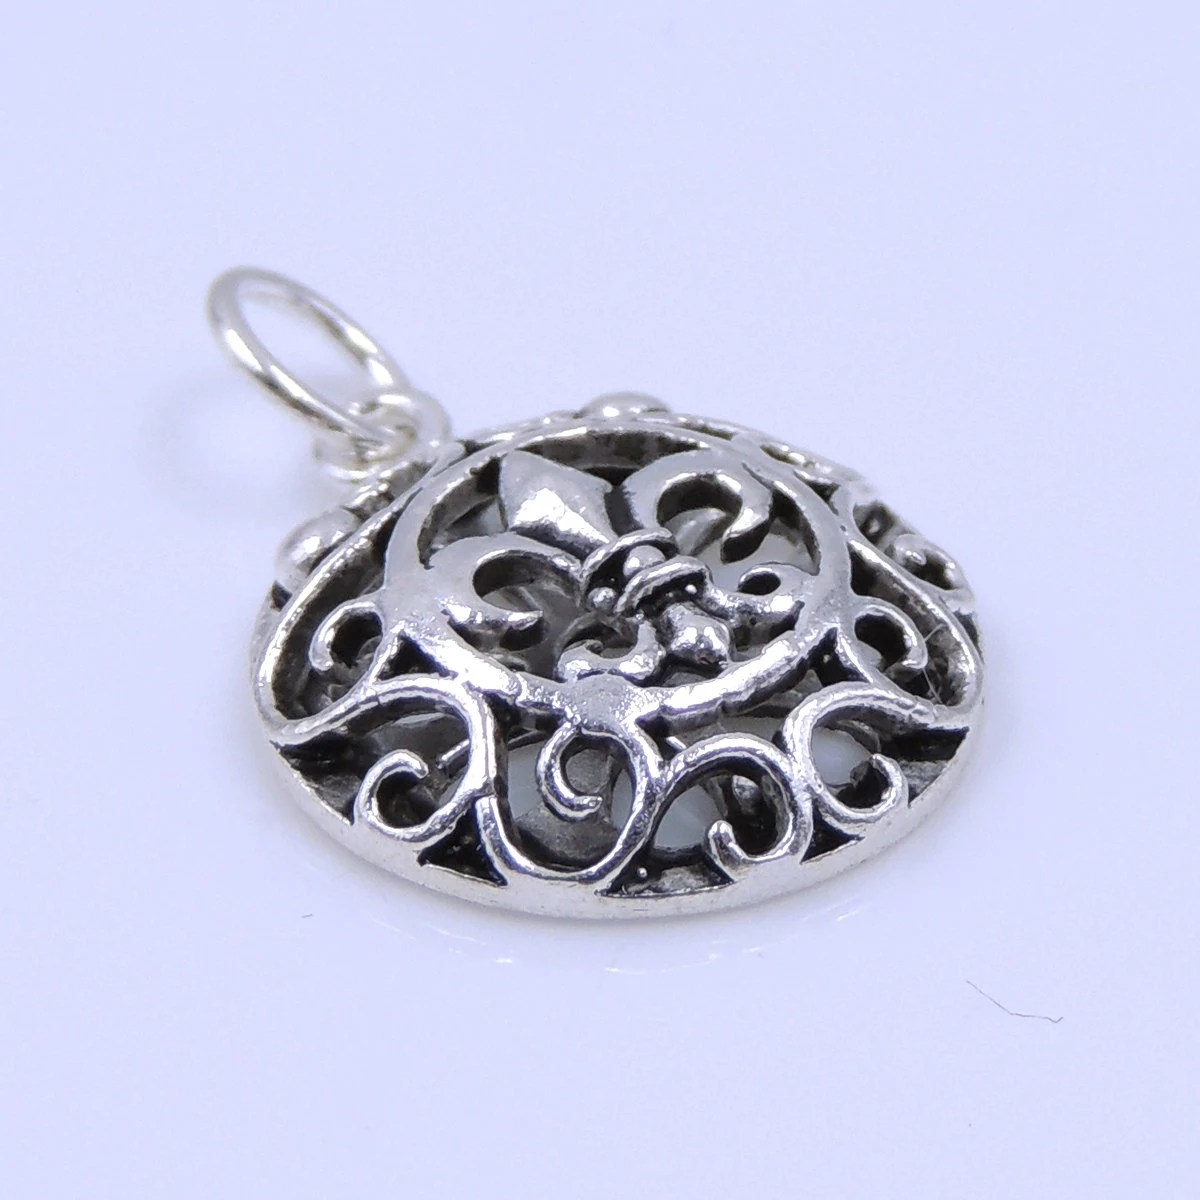 Wholesale Jewelry Findings Canada S925 Sterling Silver 17mm Celtic Vintage Round Fleur De